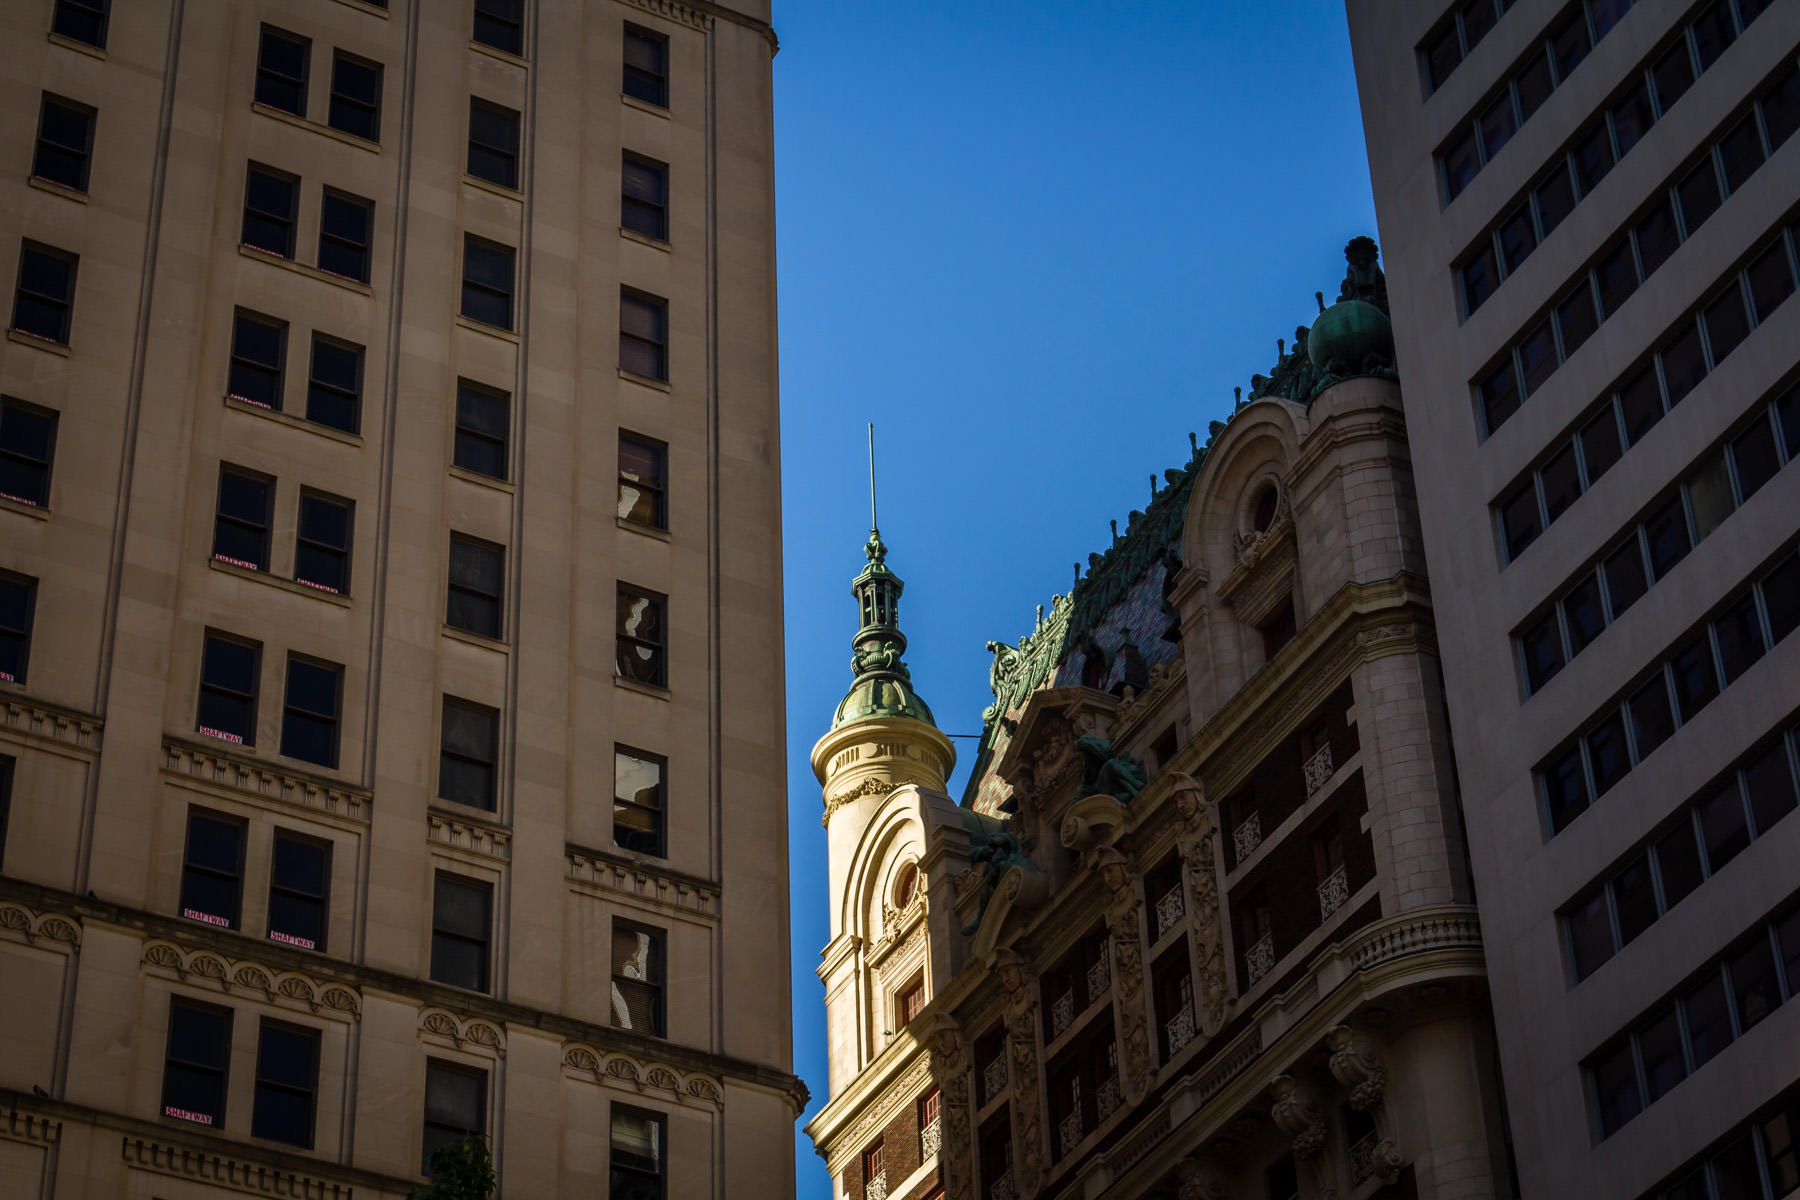 The spire atop Dallas' Adolphus Hotel rises into the sky, peeking out from the shadows of nearby buildings.